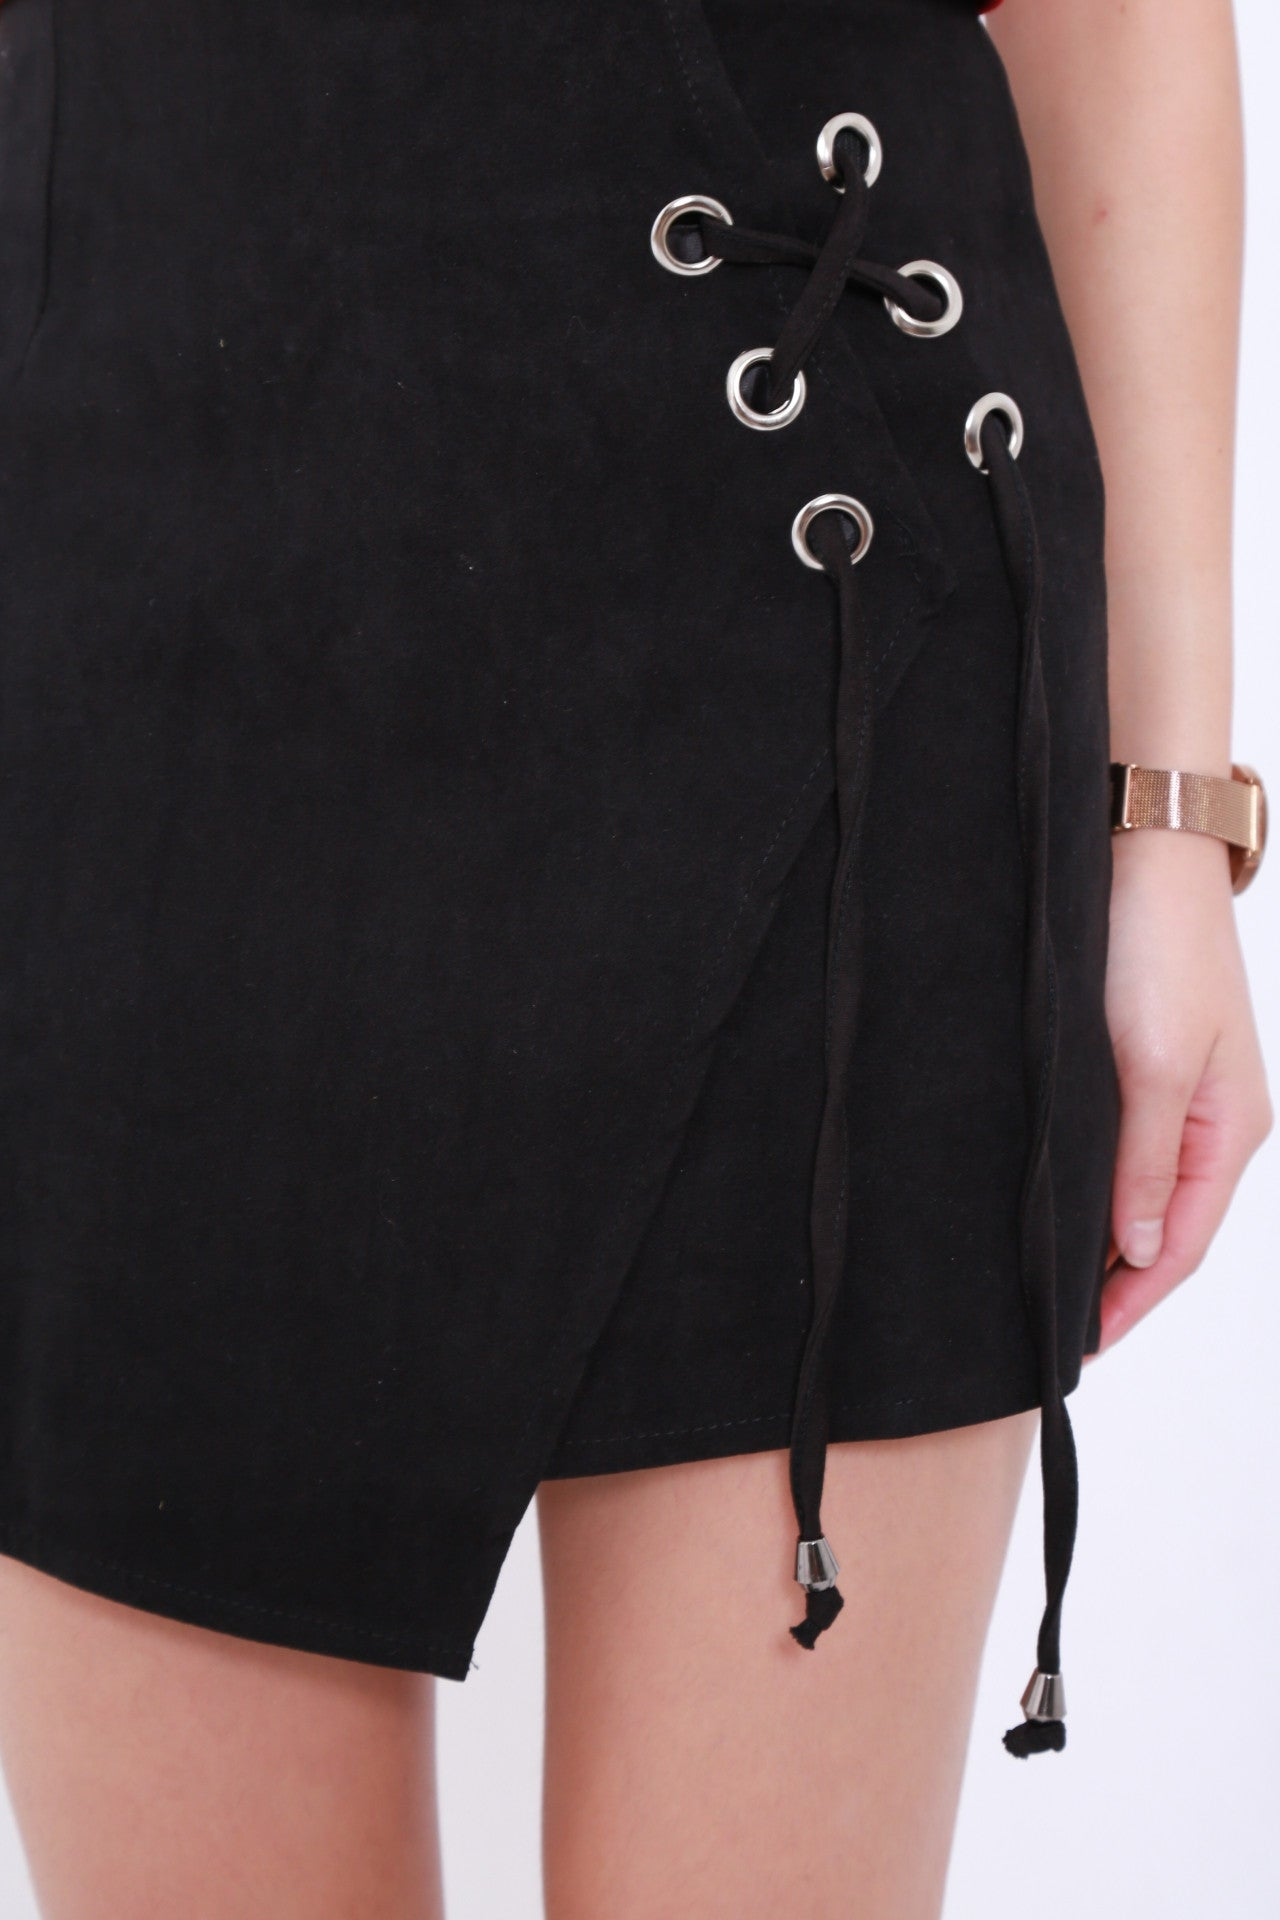 ASYMMETRICAL LACED UP SKIRT IN BLACK - TOPAZETTE